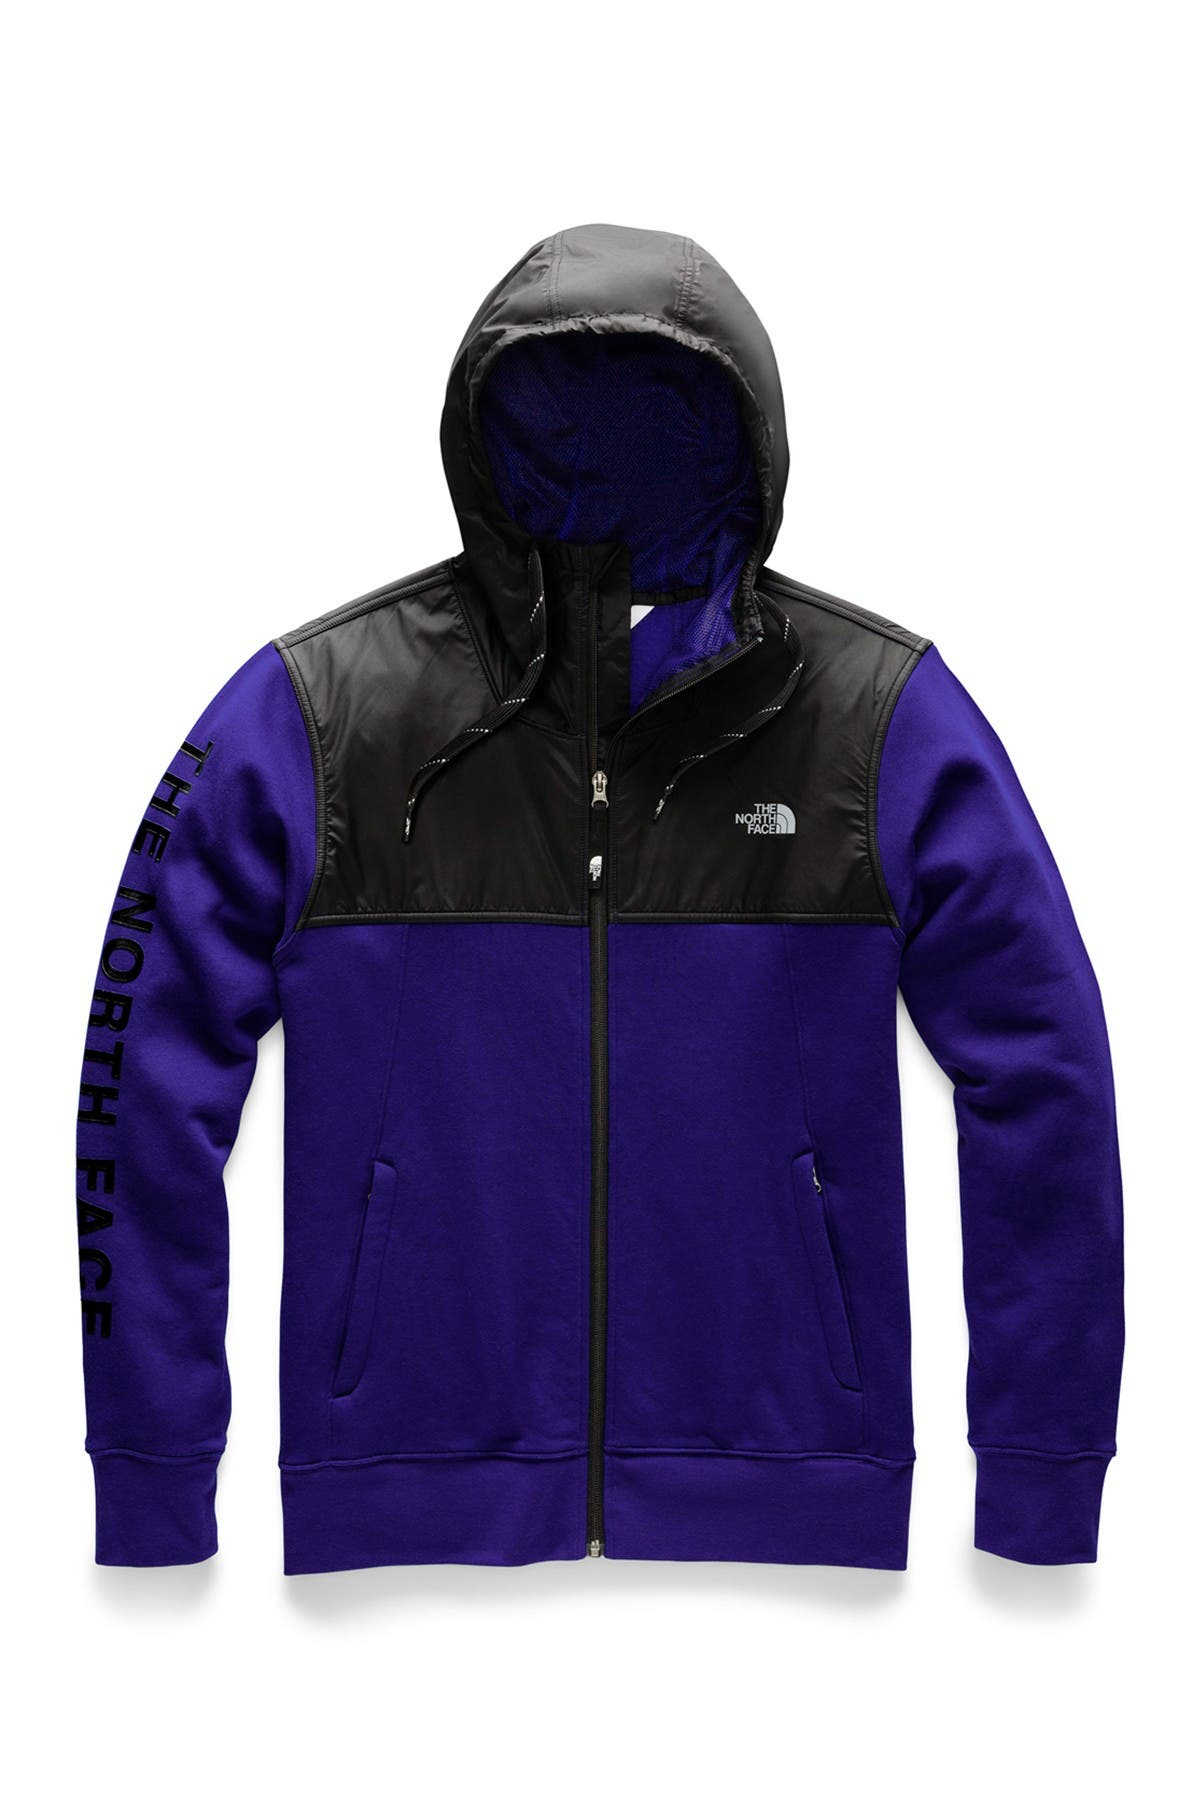 Image of The North Face Train N Logo Overlay Jacket